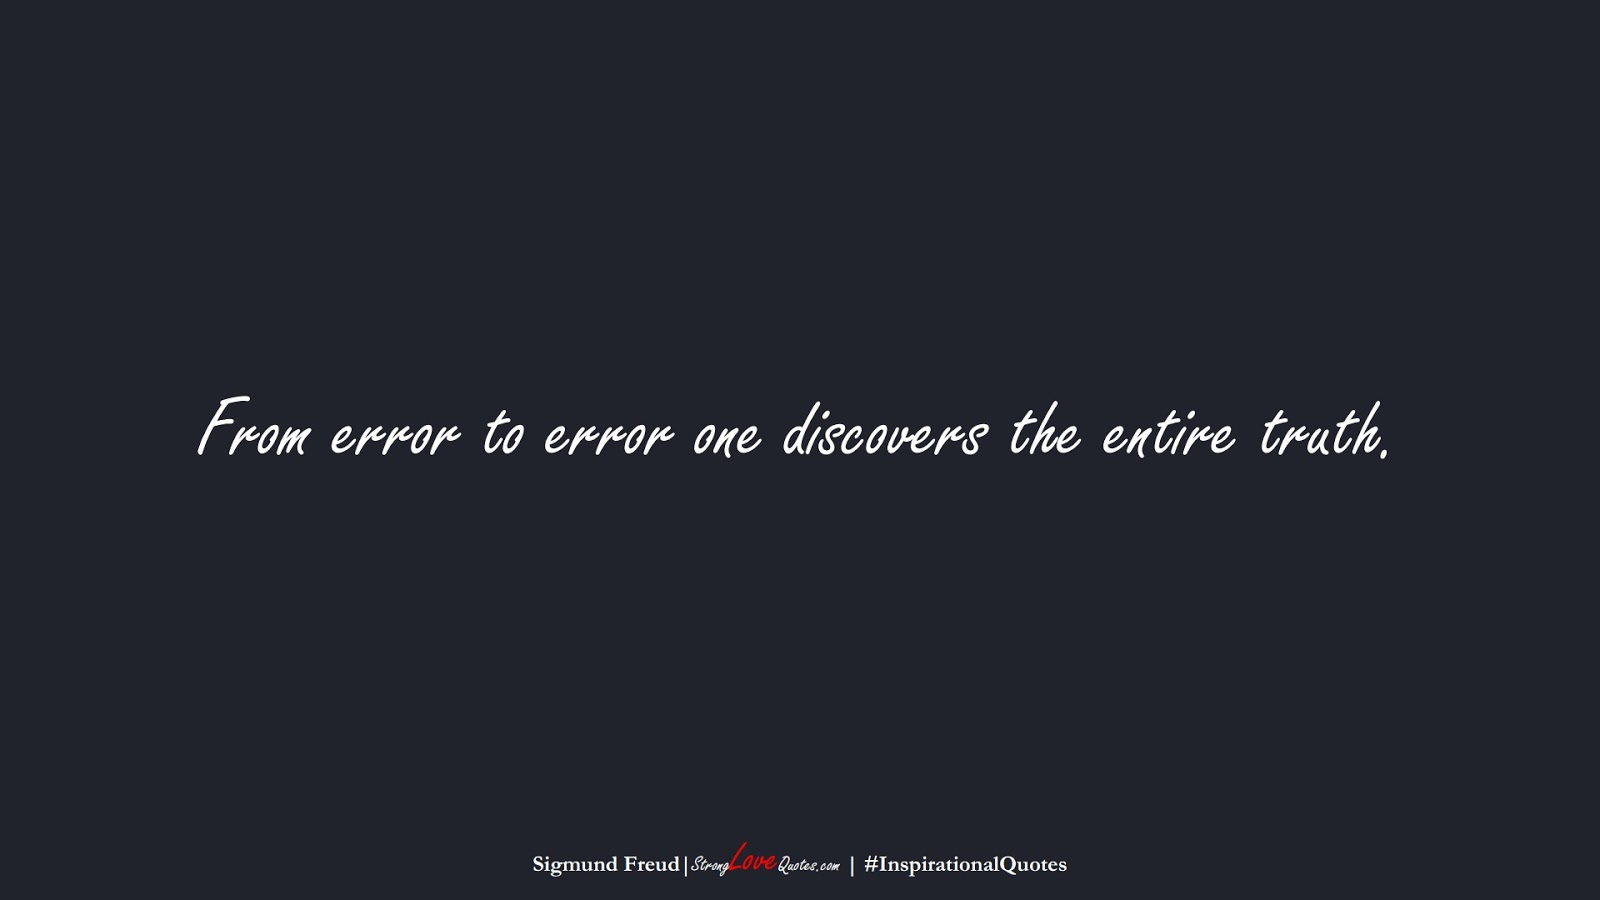 From error to error one discovers the entire truth. (Sigmund Freud);  #InspirationalQuotes